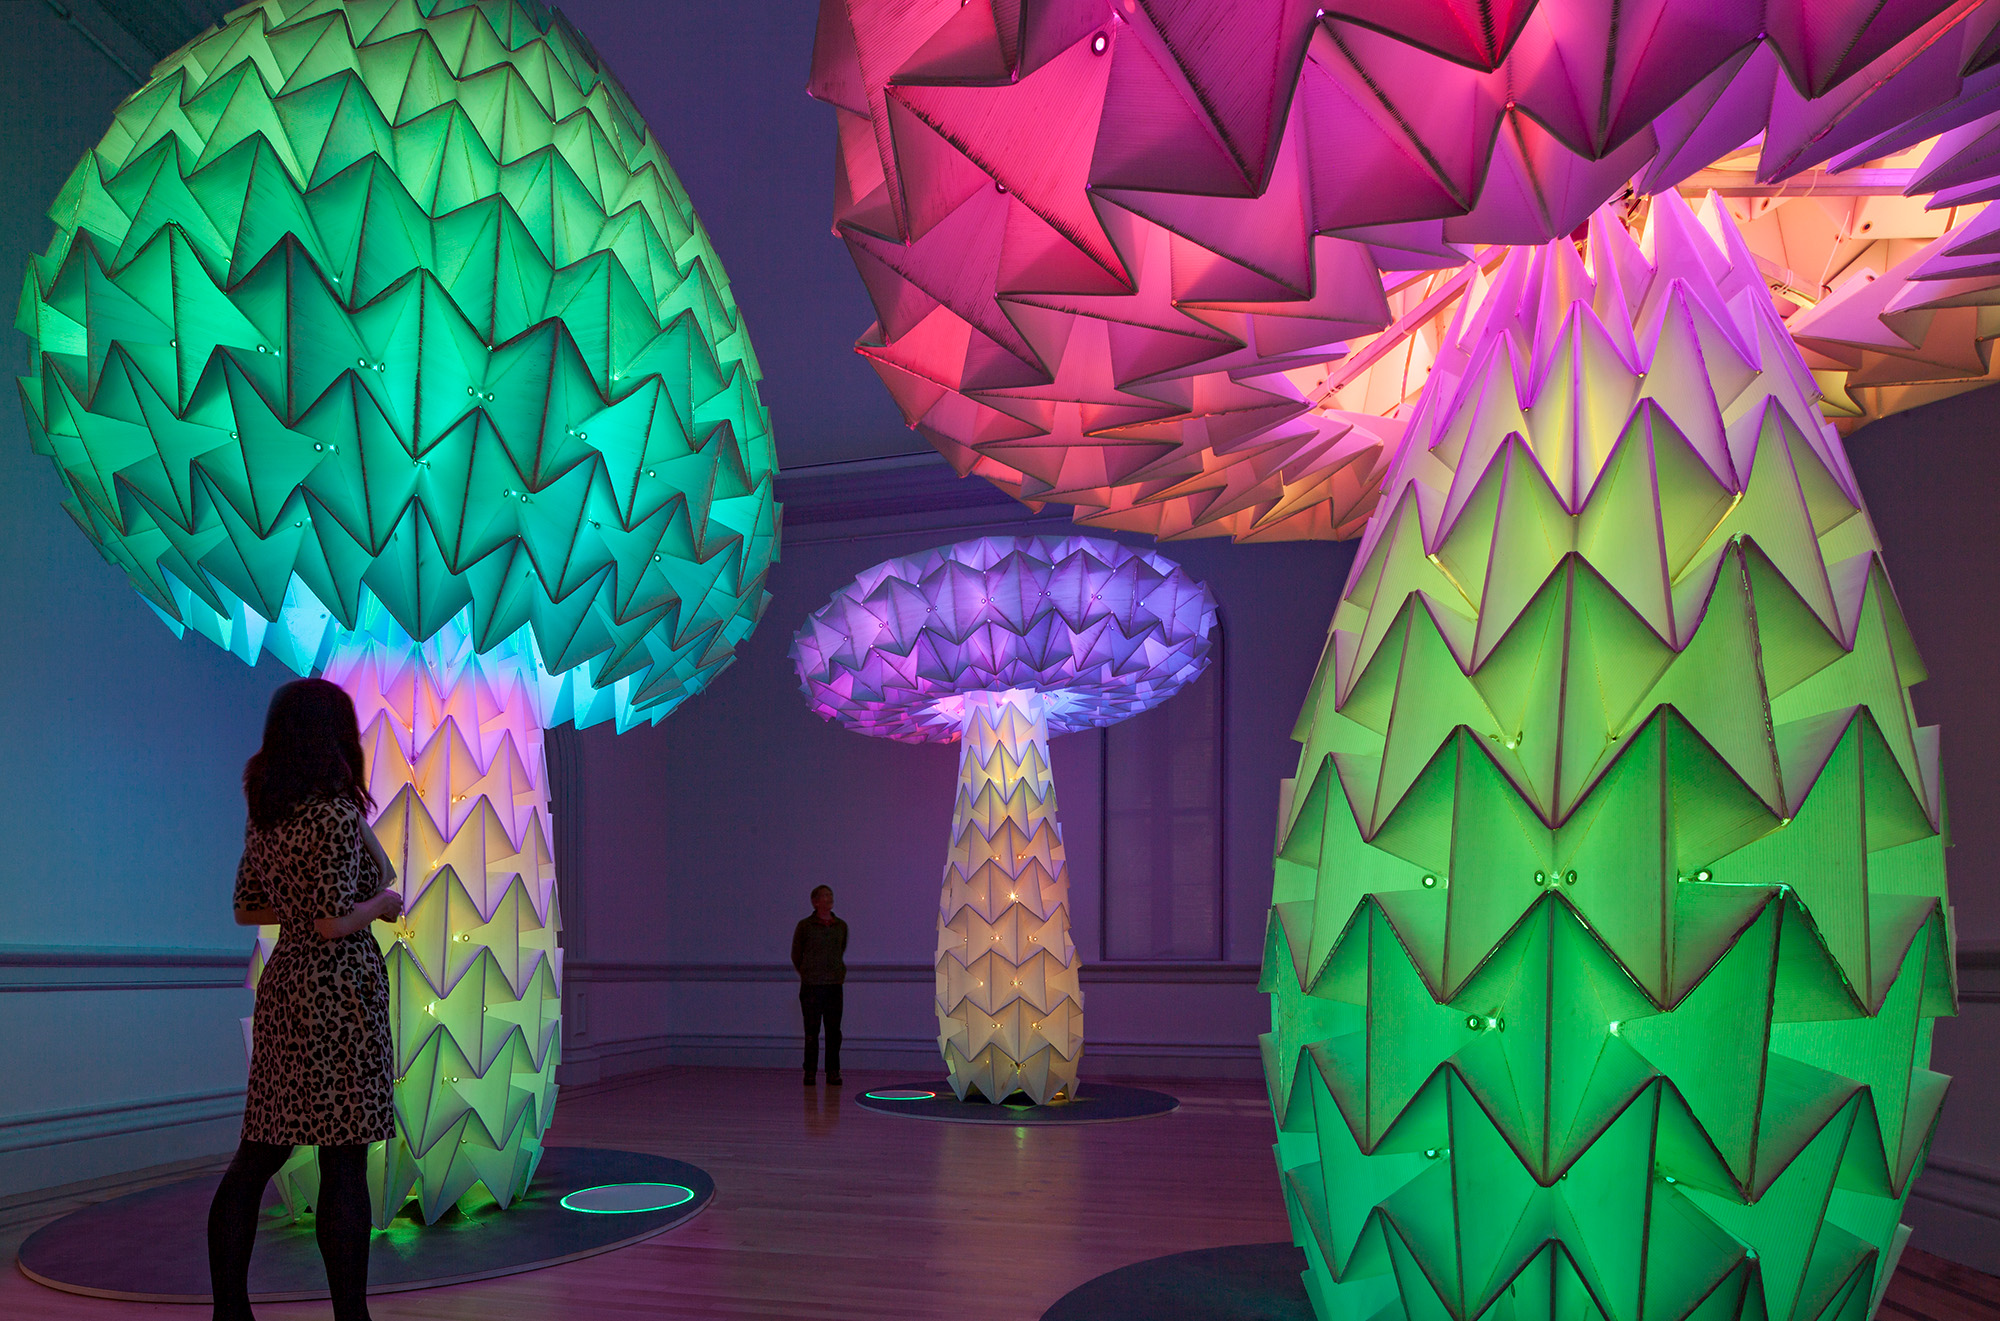 Burning Man Exhibit at Oakland Museum Asks Few Questions of Festival's Purpose